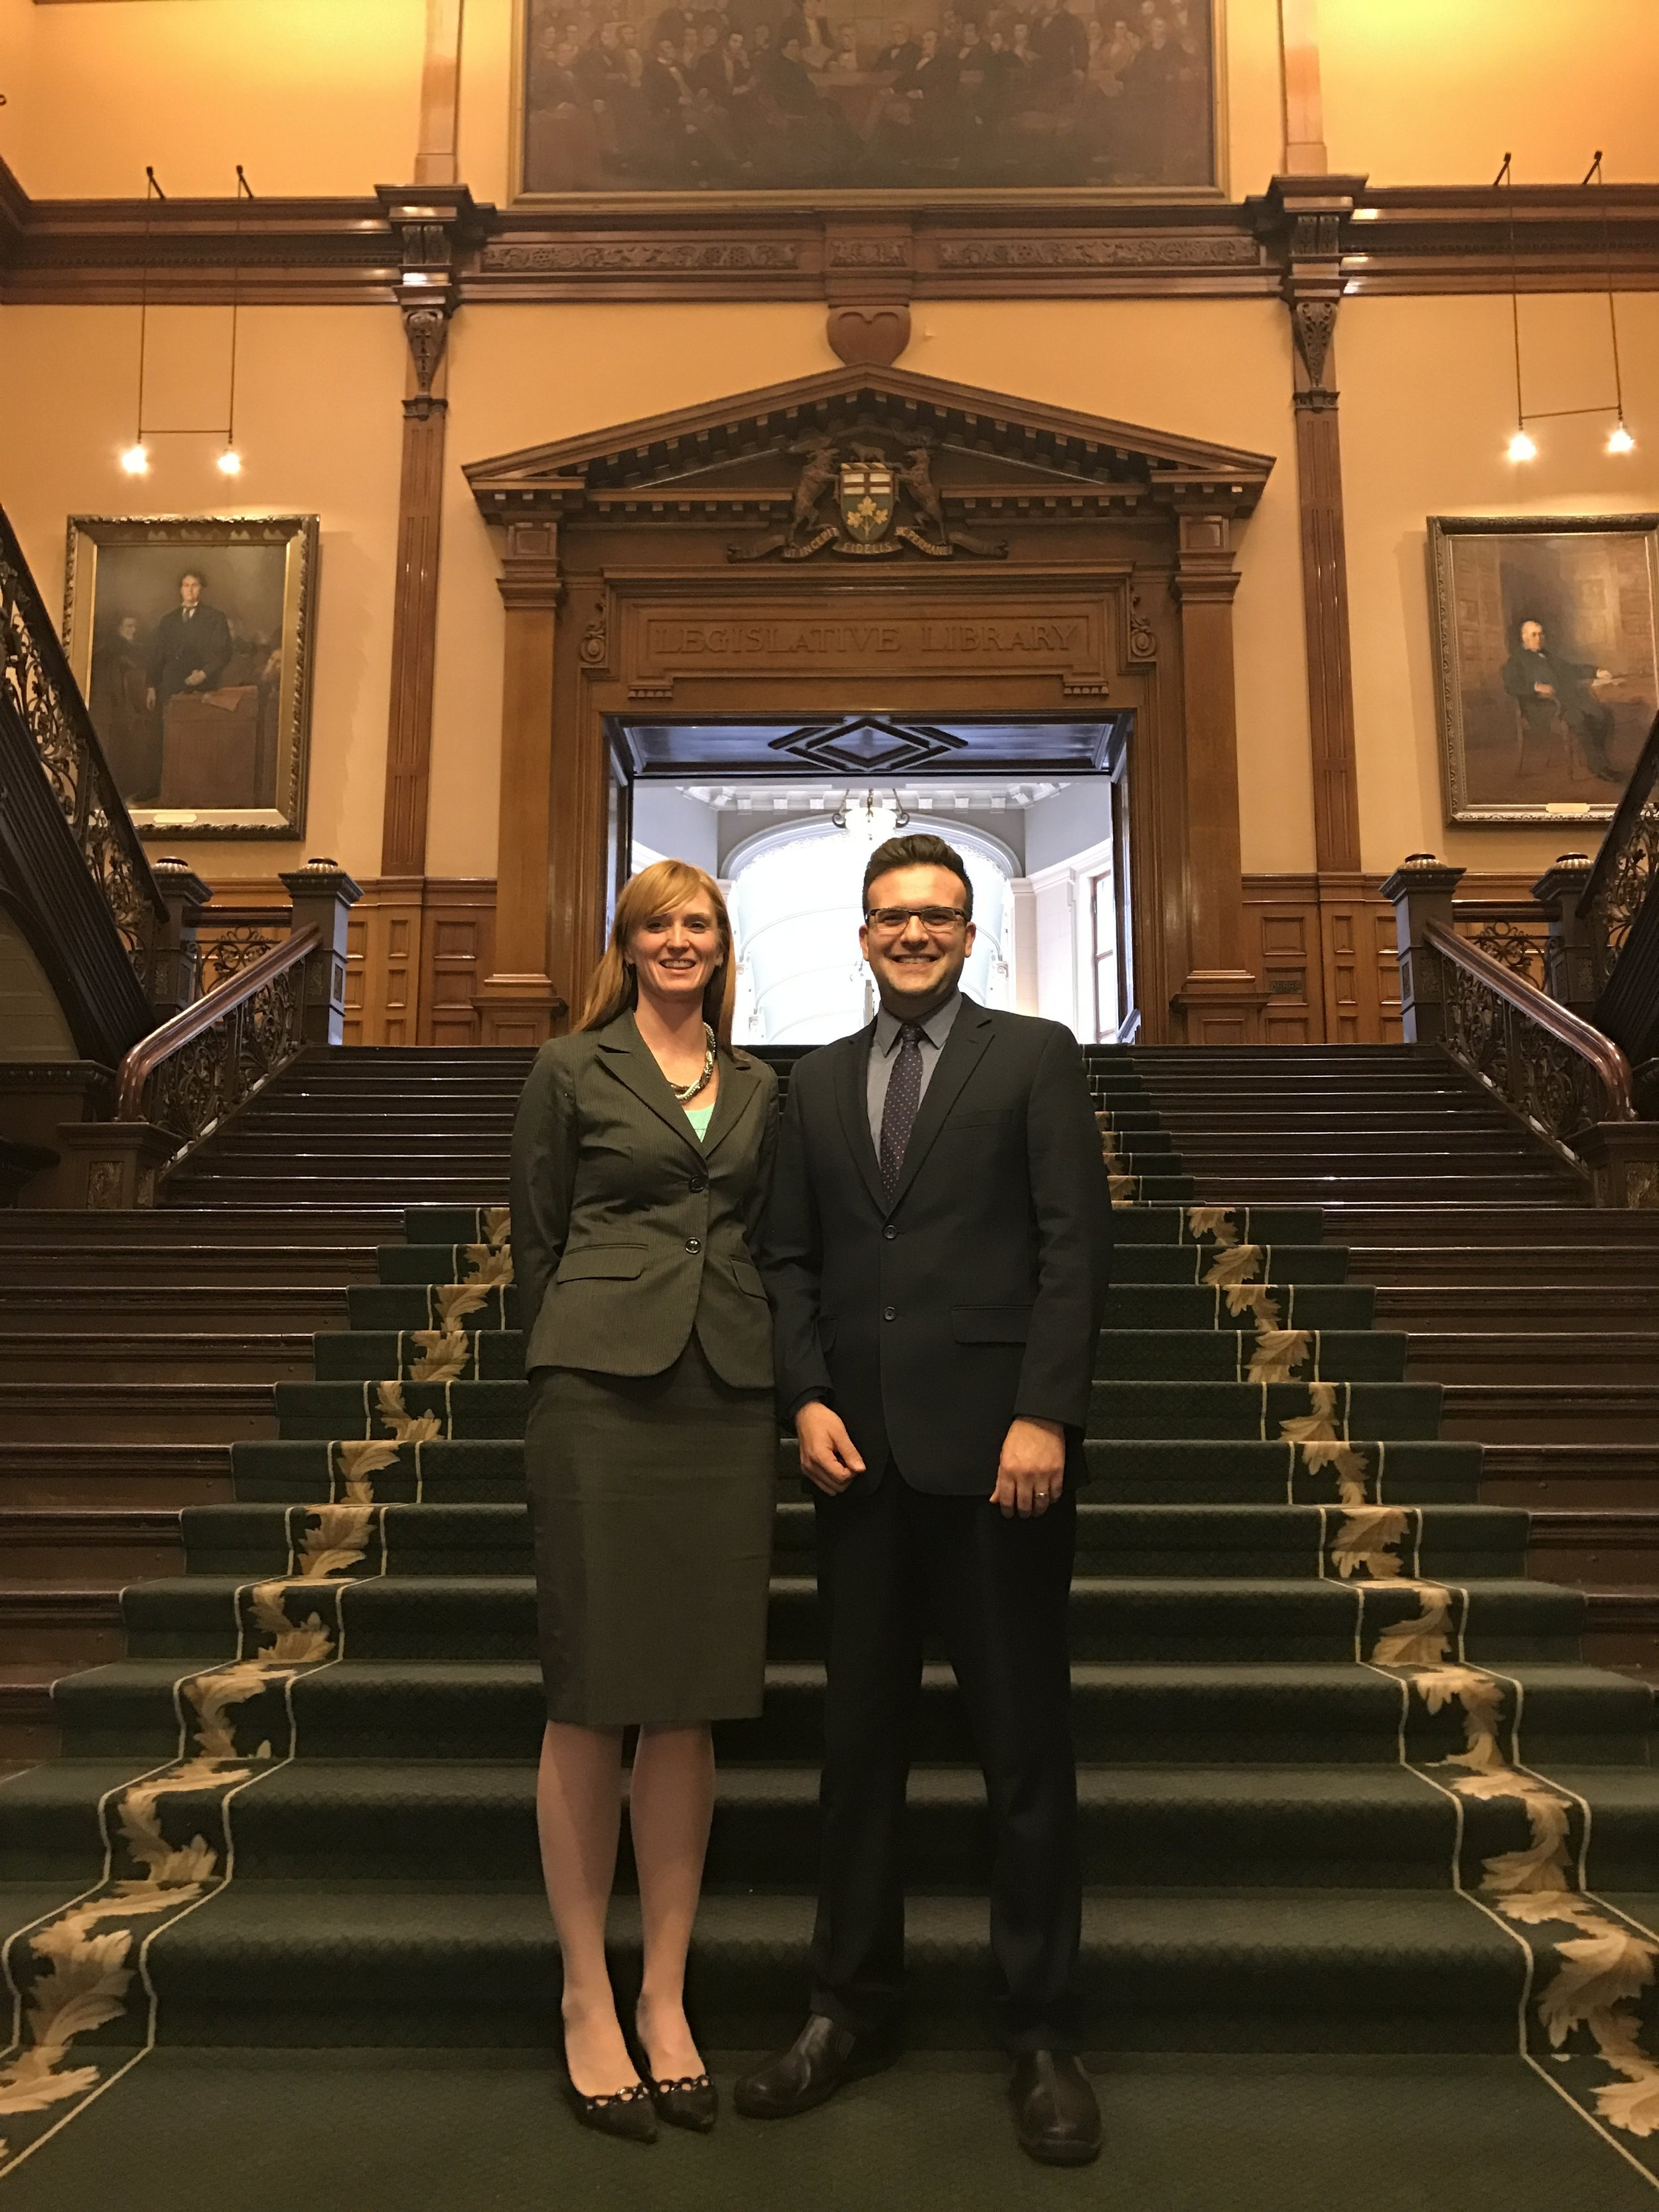 CLF's Deina Warren (Legal Counsel) and Derek Ross (Executive Director & General Counsel) urged the Standing Committee to protect freedom of conscience in Bill 84.